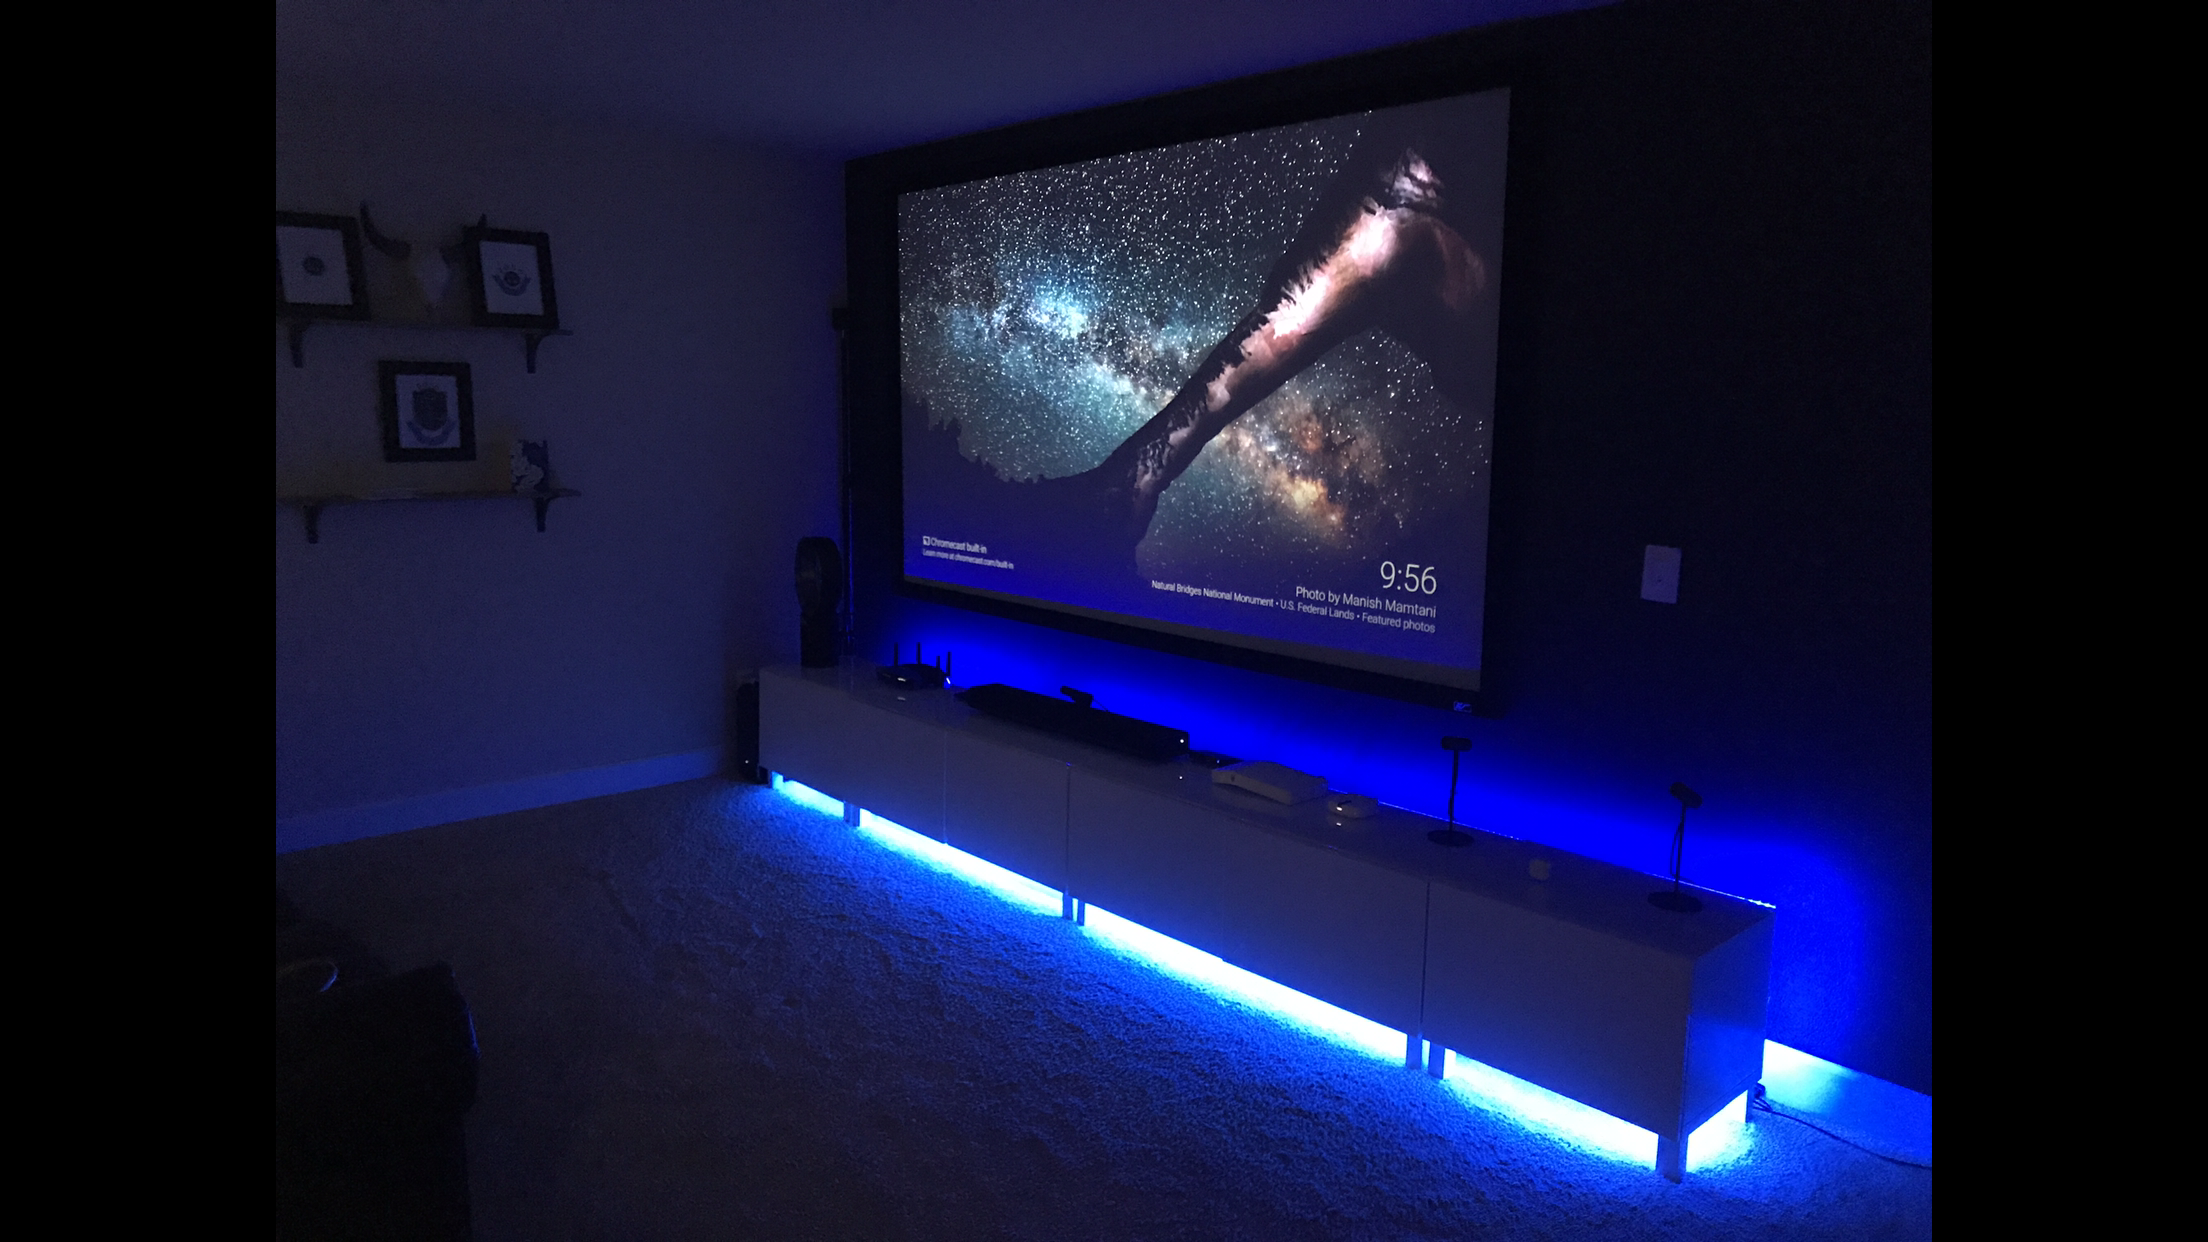 My Man Cave Movie Screen And Rgb Lights